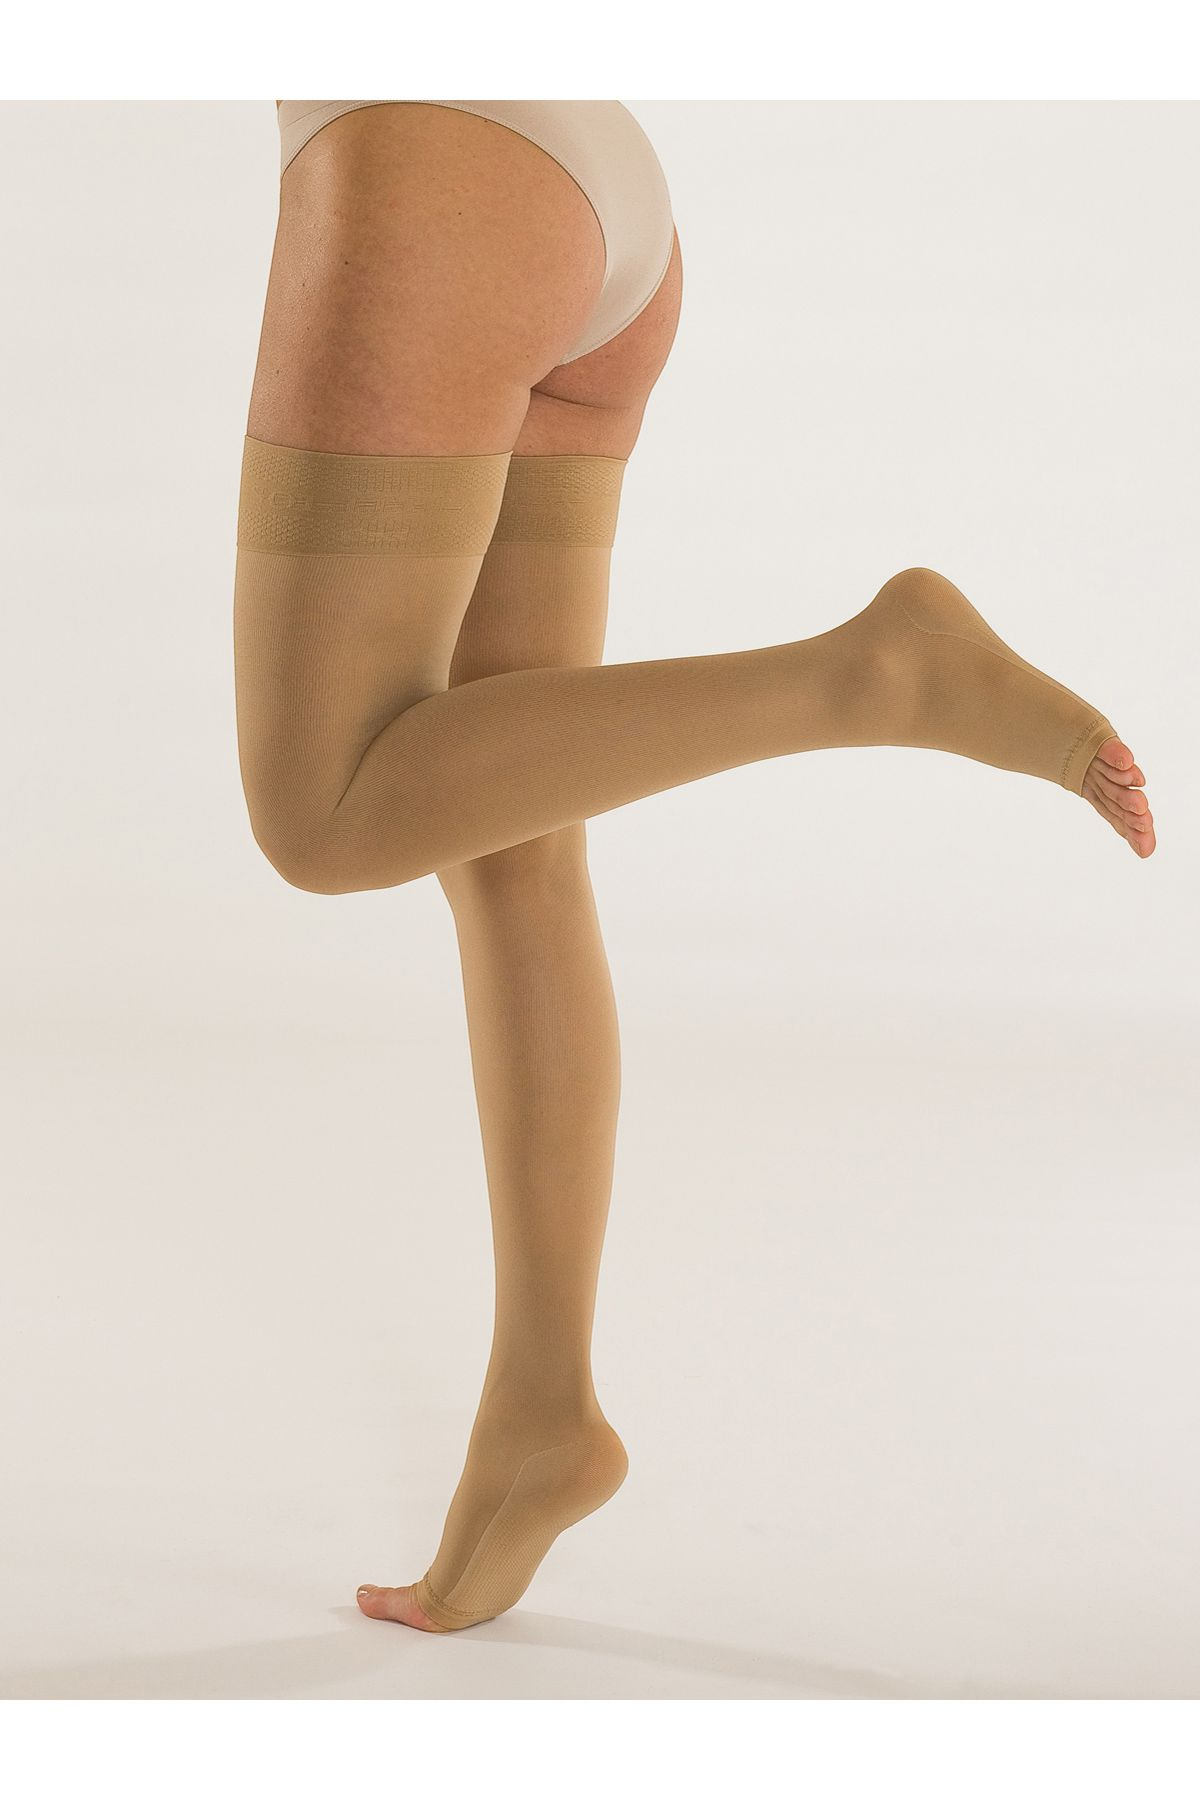 815bbb99bc021 Solidea Catherine Class 1 Thigh Stockings - Daylong